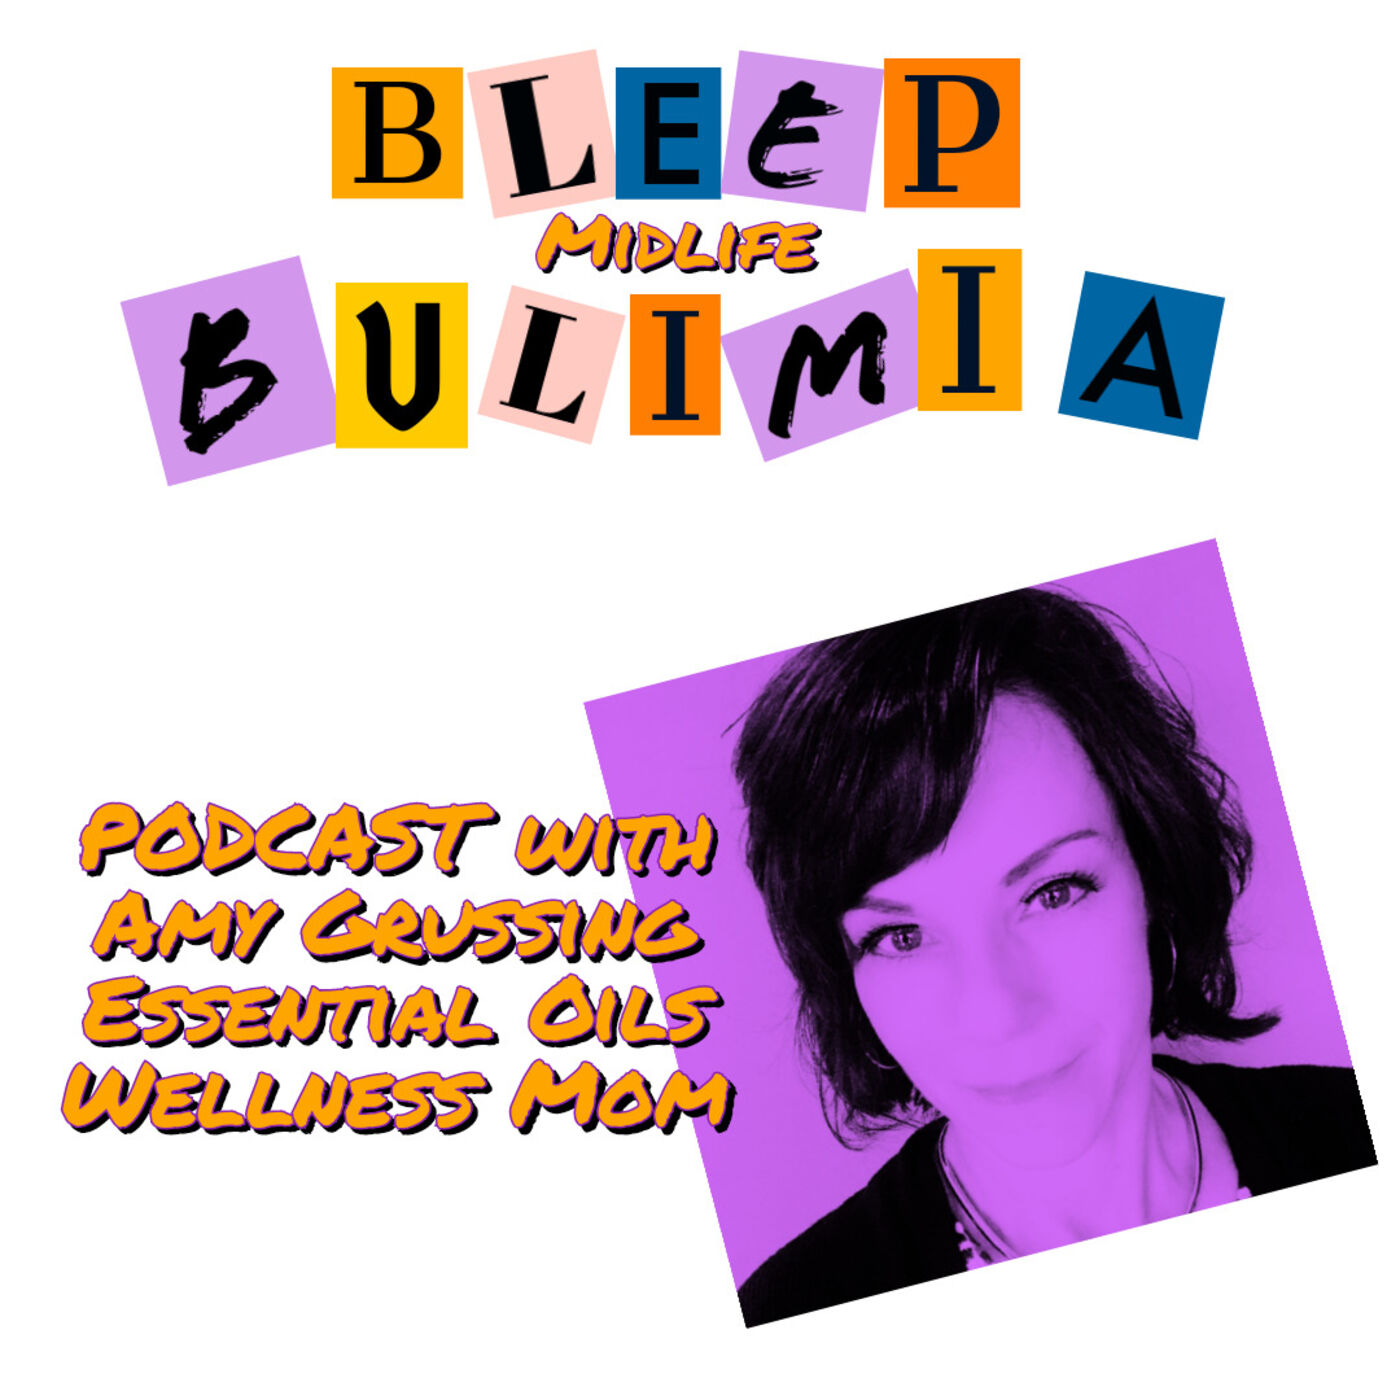 Bleep Bulimia Episode 39 with Amy Grussing Essential Oils Wellness Mom